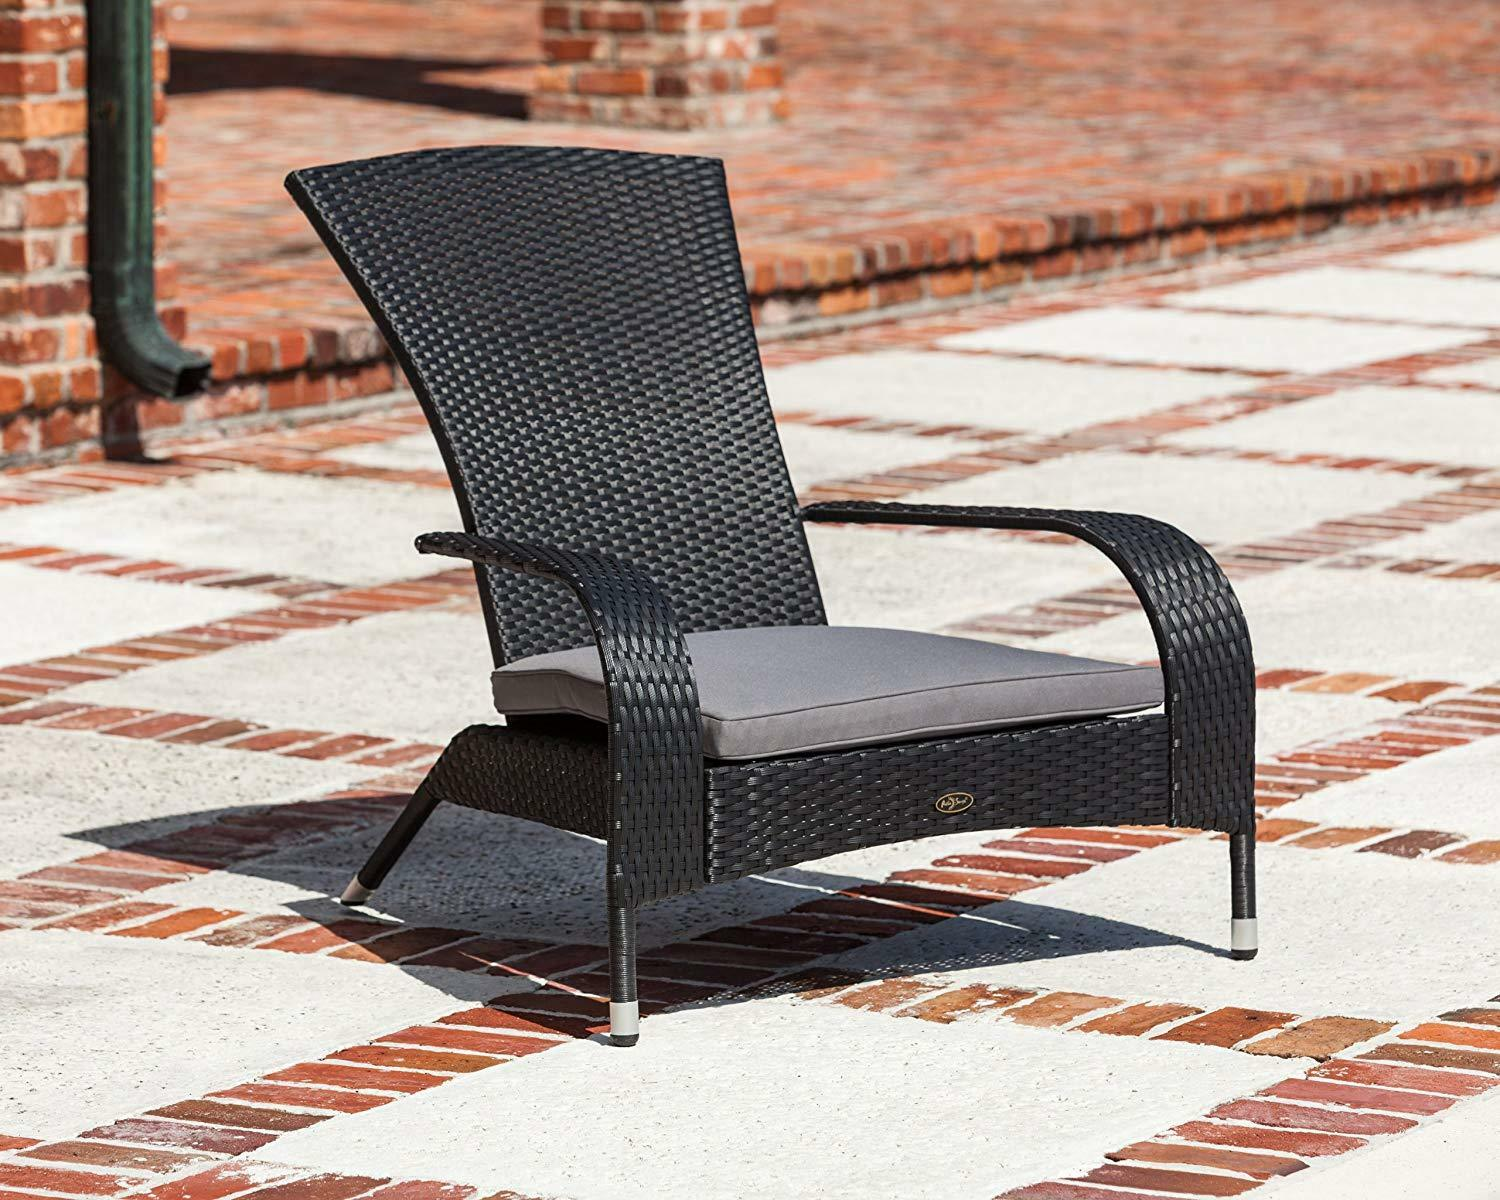 Outdoor Adirondack Chair Weather Resistant with Cushion Blac